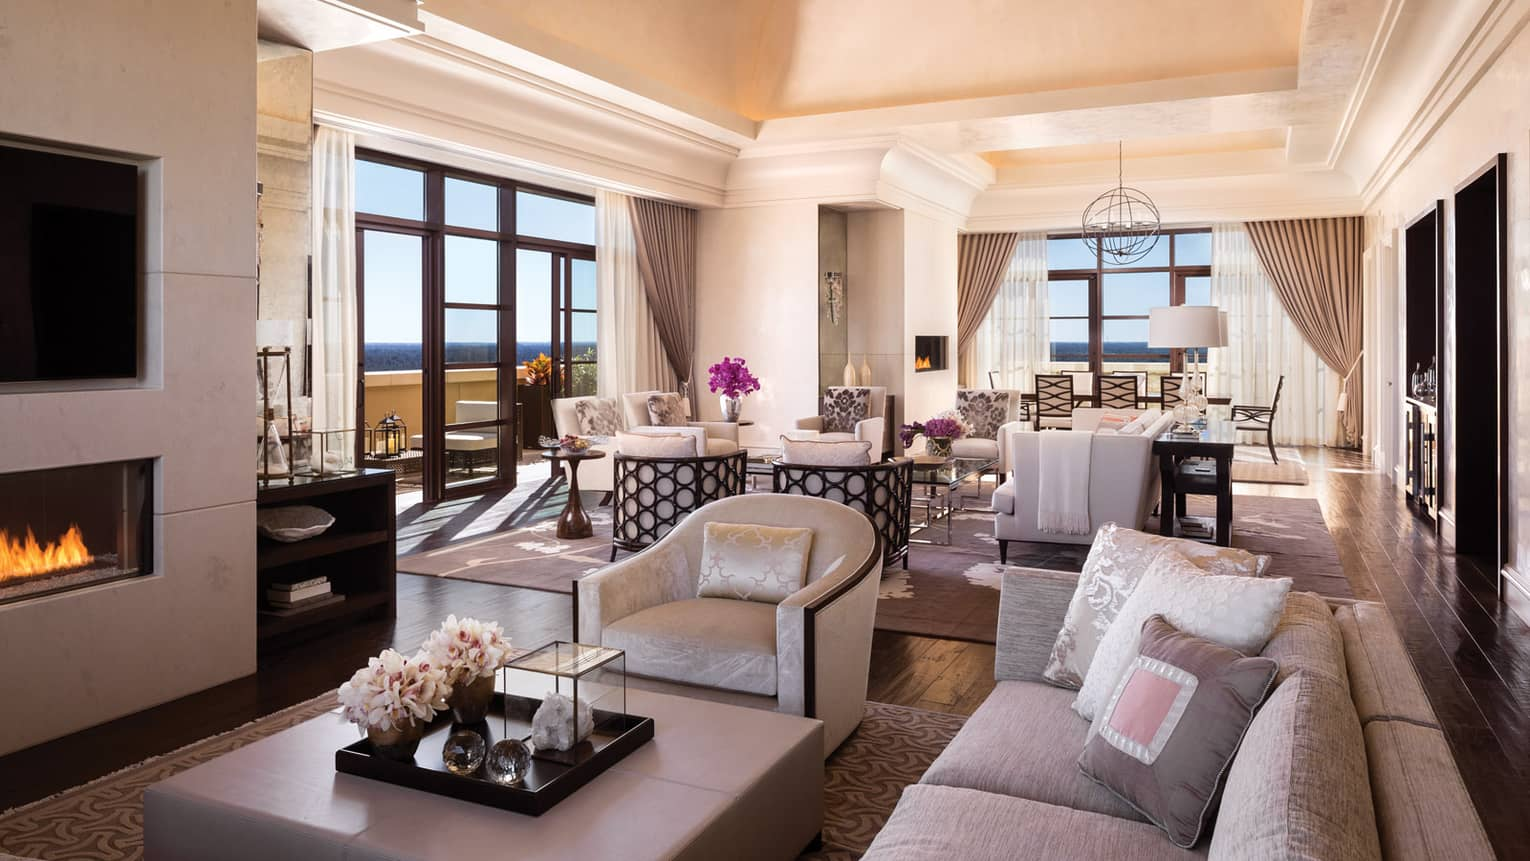 Presidential Suite sofa, armchair, large ottoman table by gas fireplace, TV in front of dining room